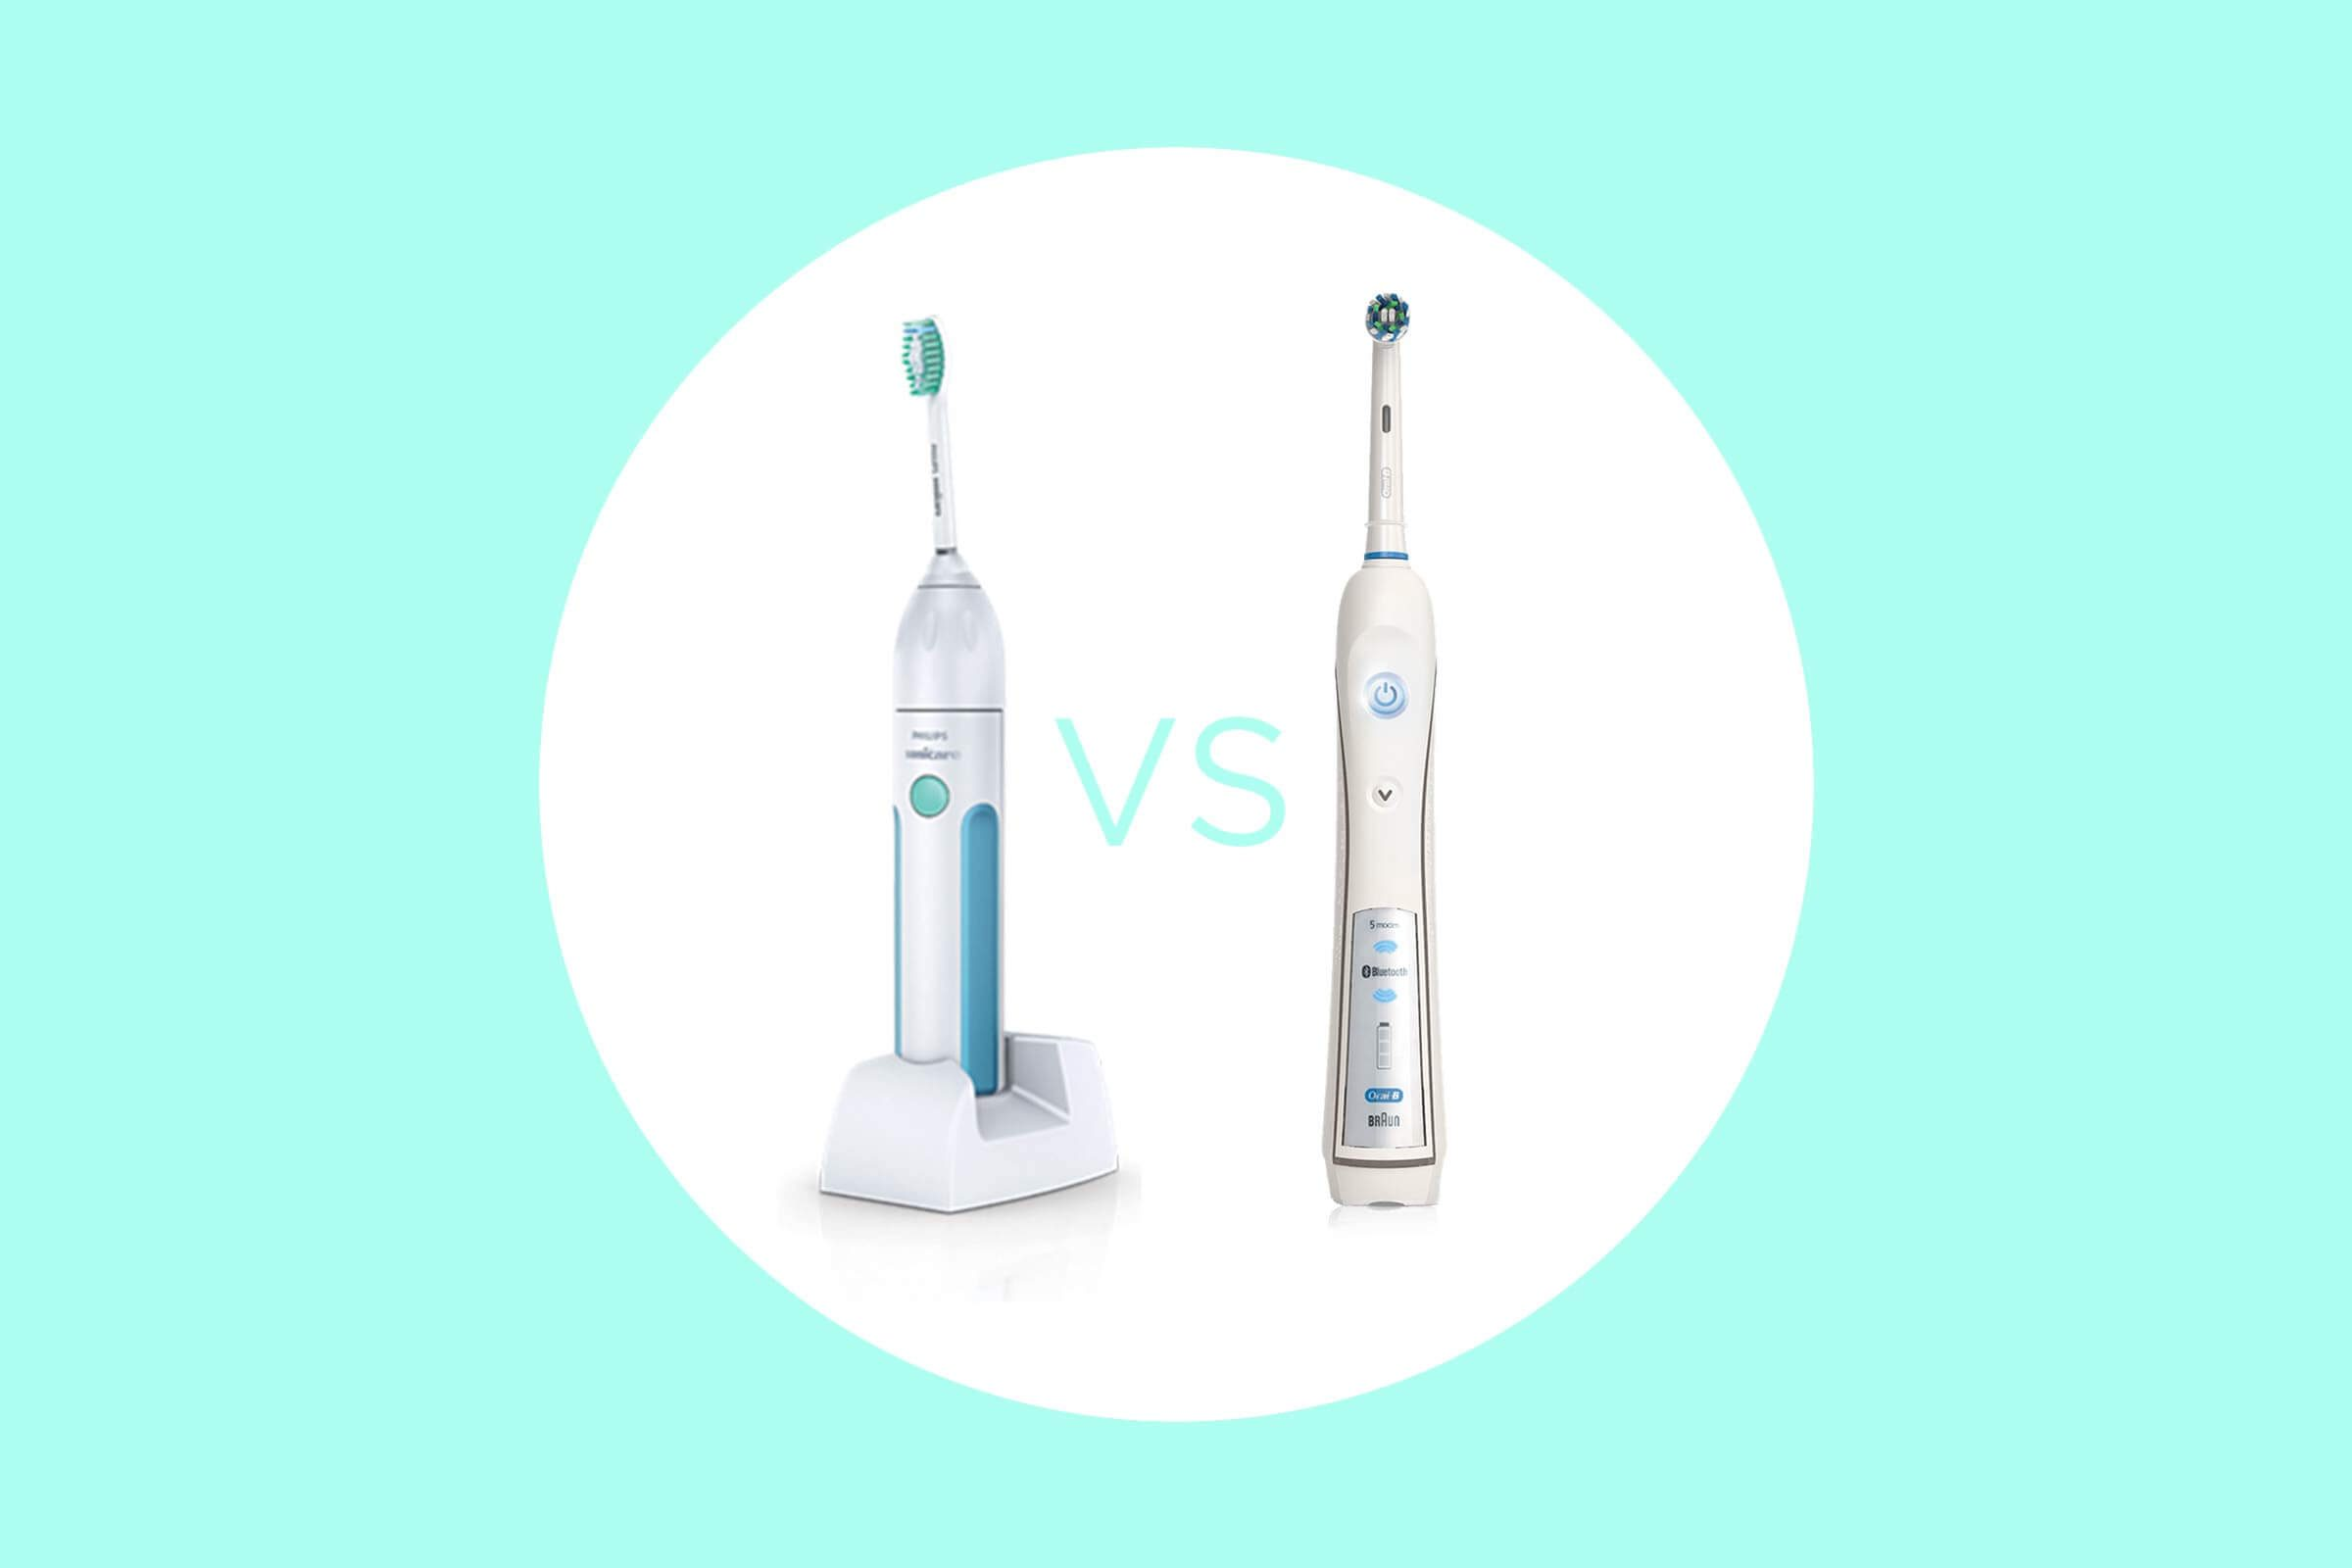 Sonicare and Oral-B brushes side by side.